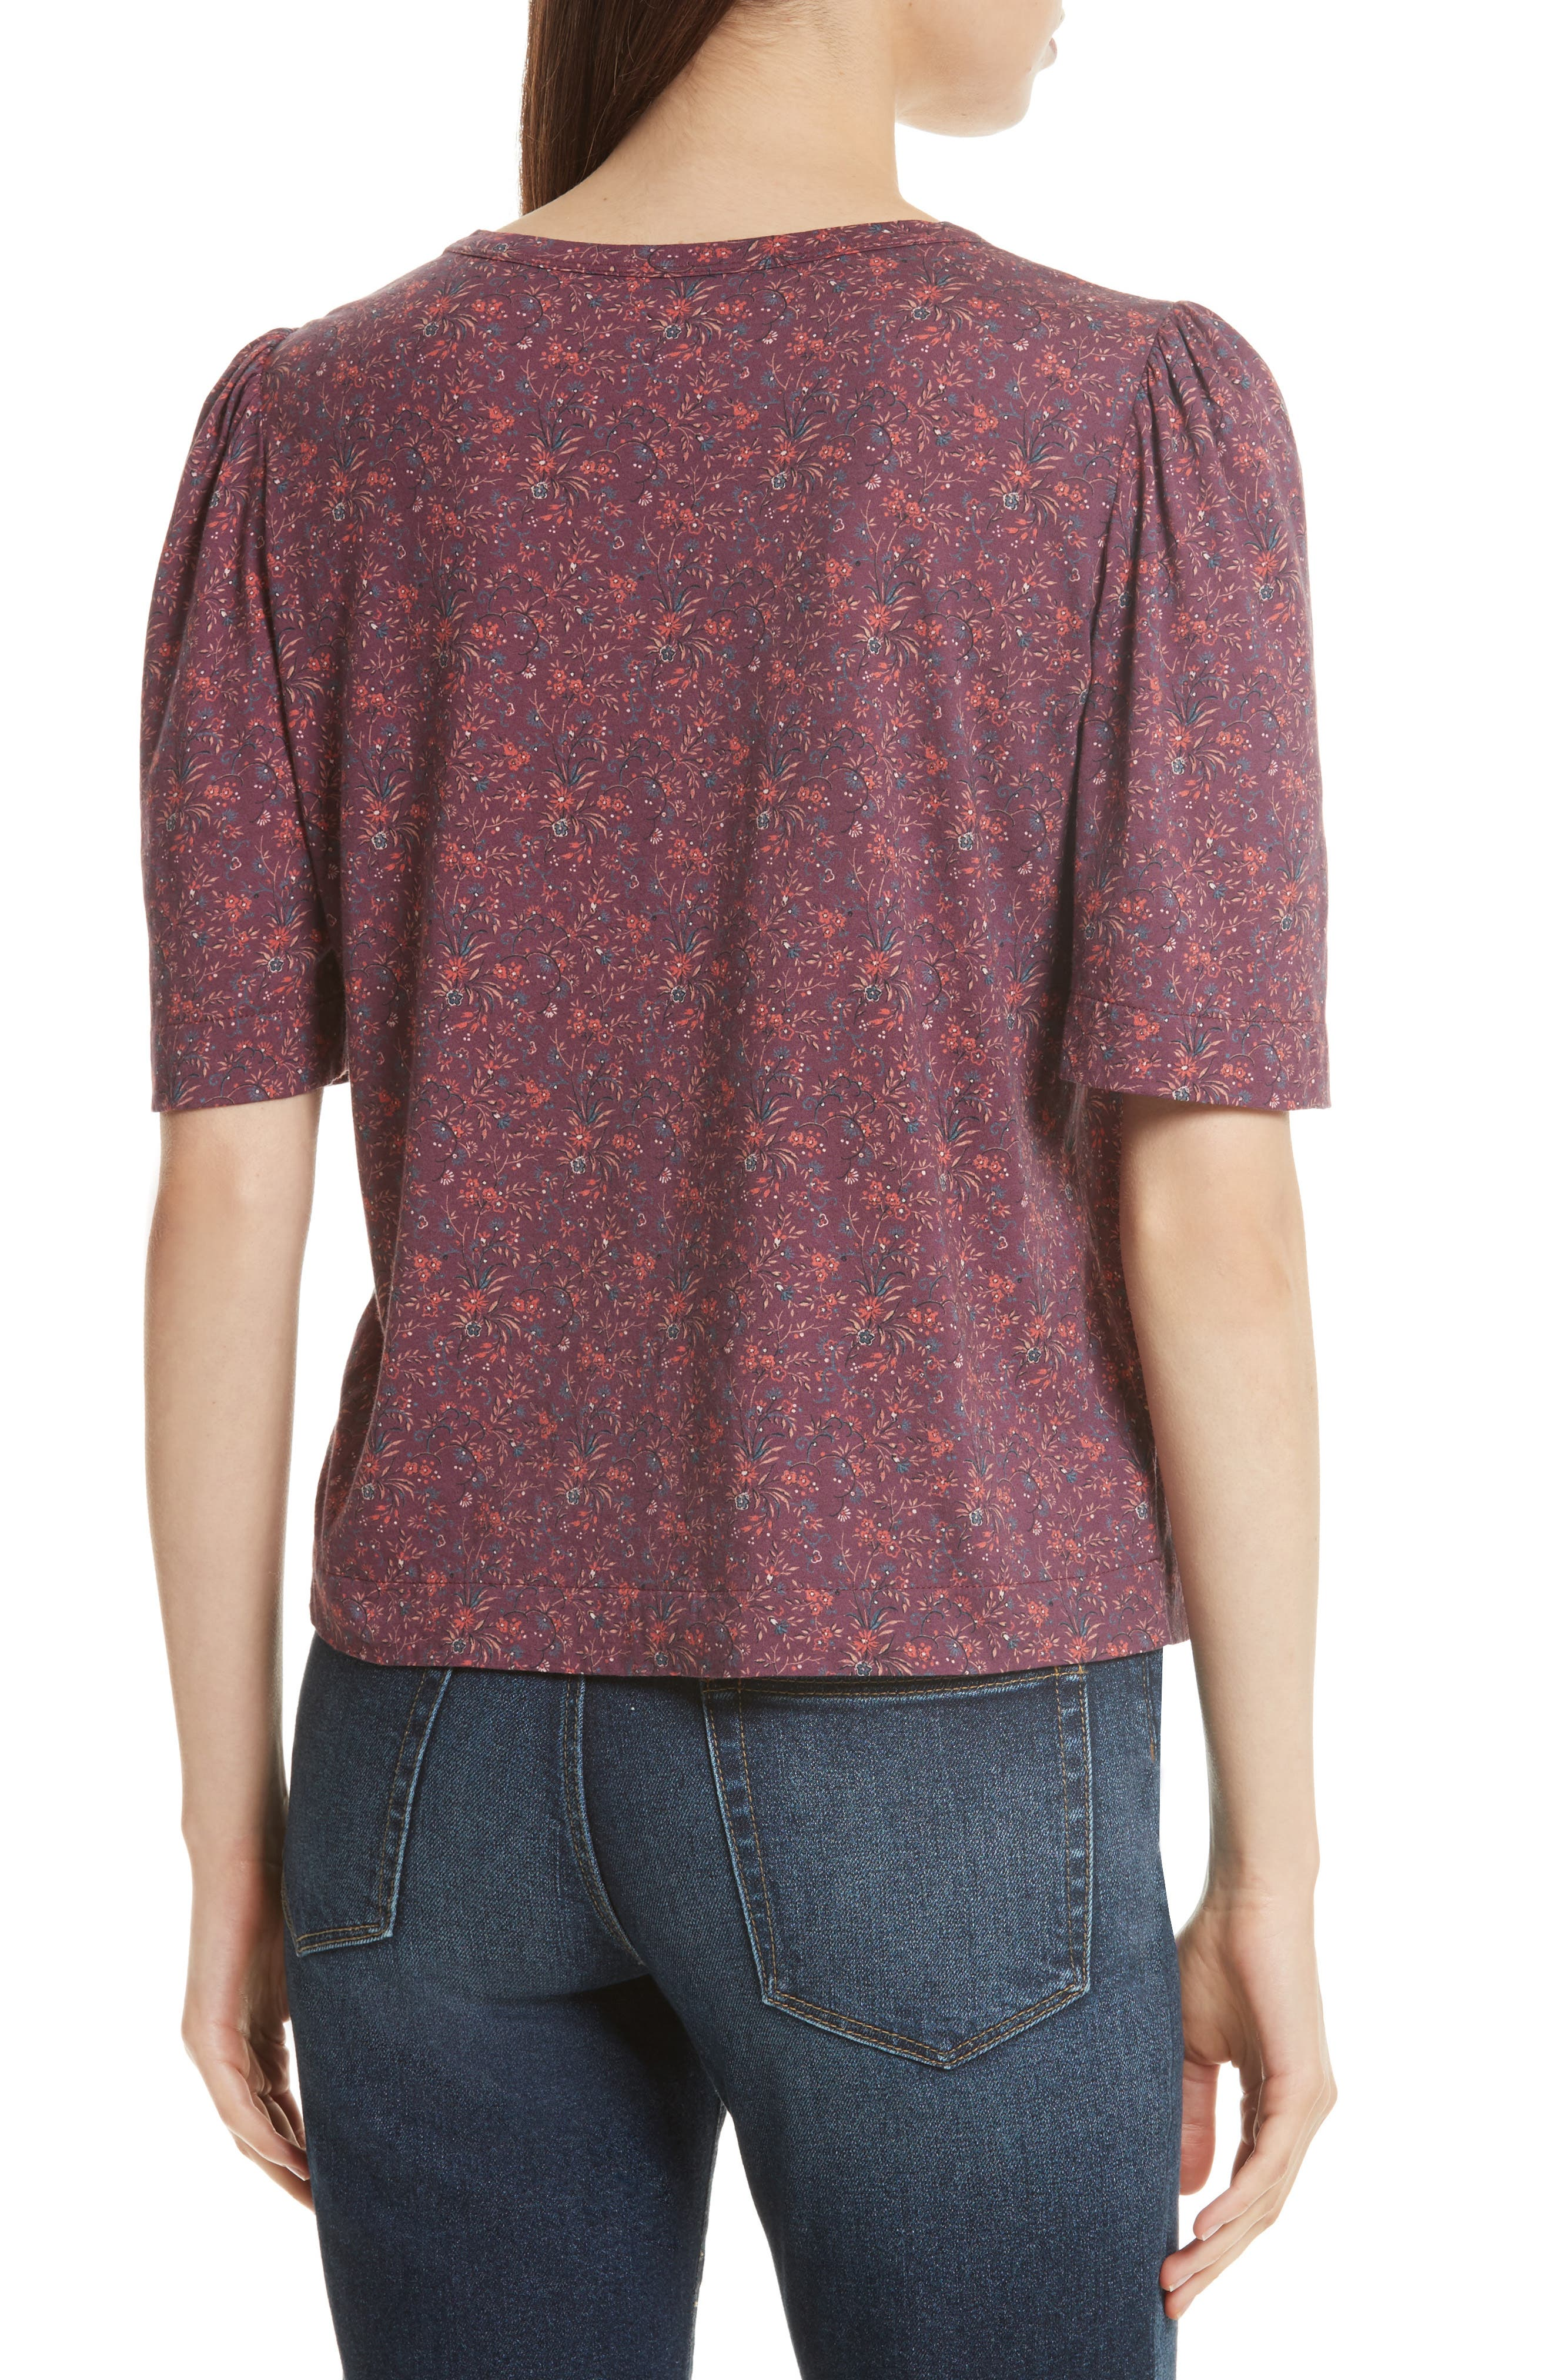 Rebecca Taylor Brittany Floral Jersey Top,                             Alternate thumbnail 2, color,                             503